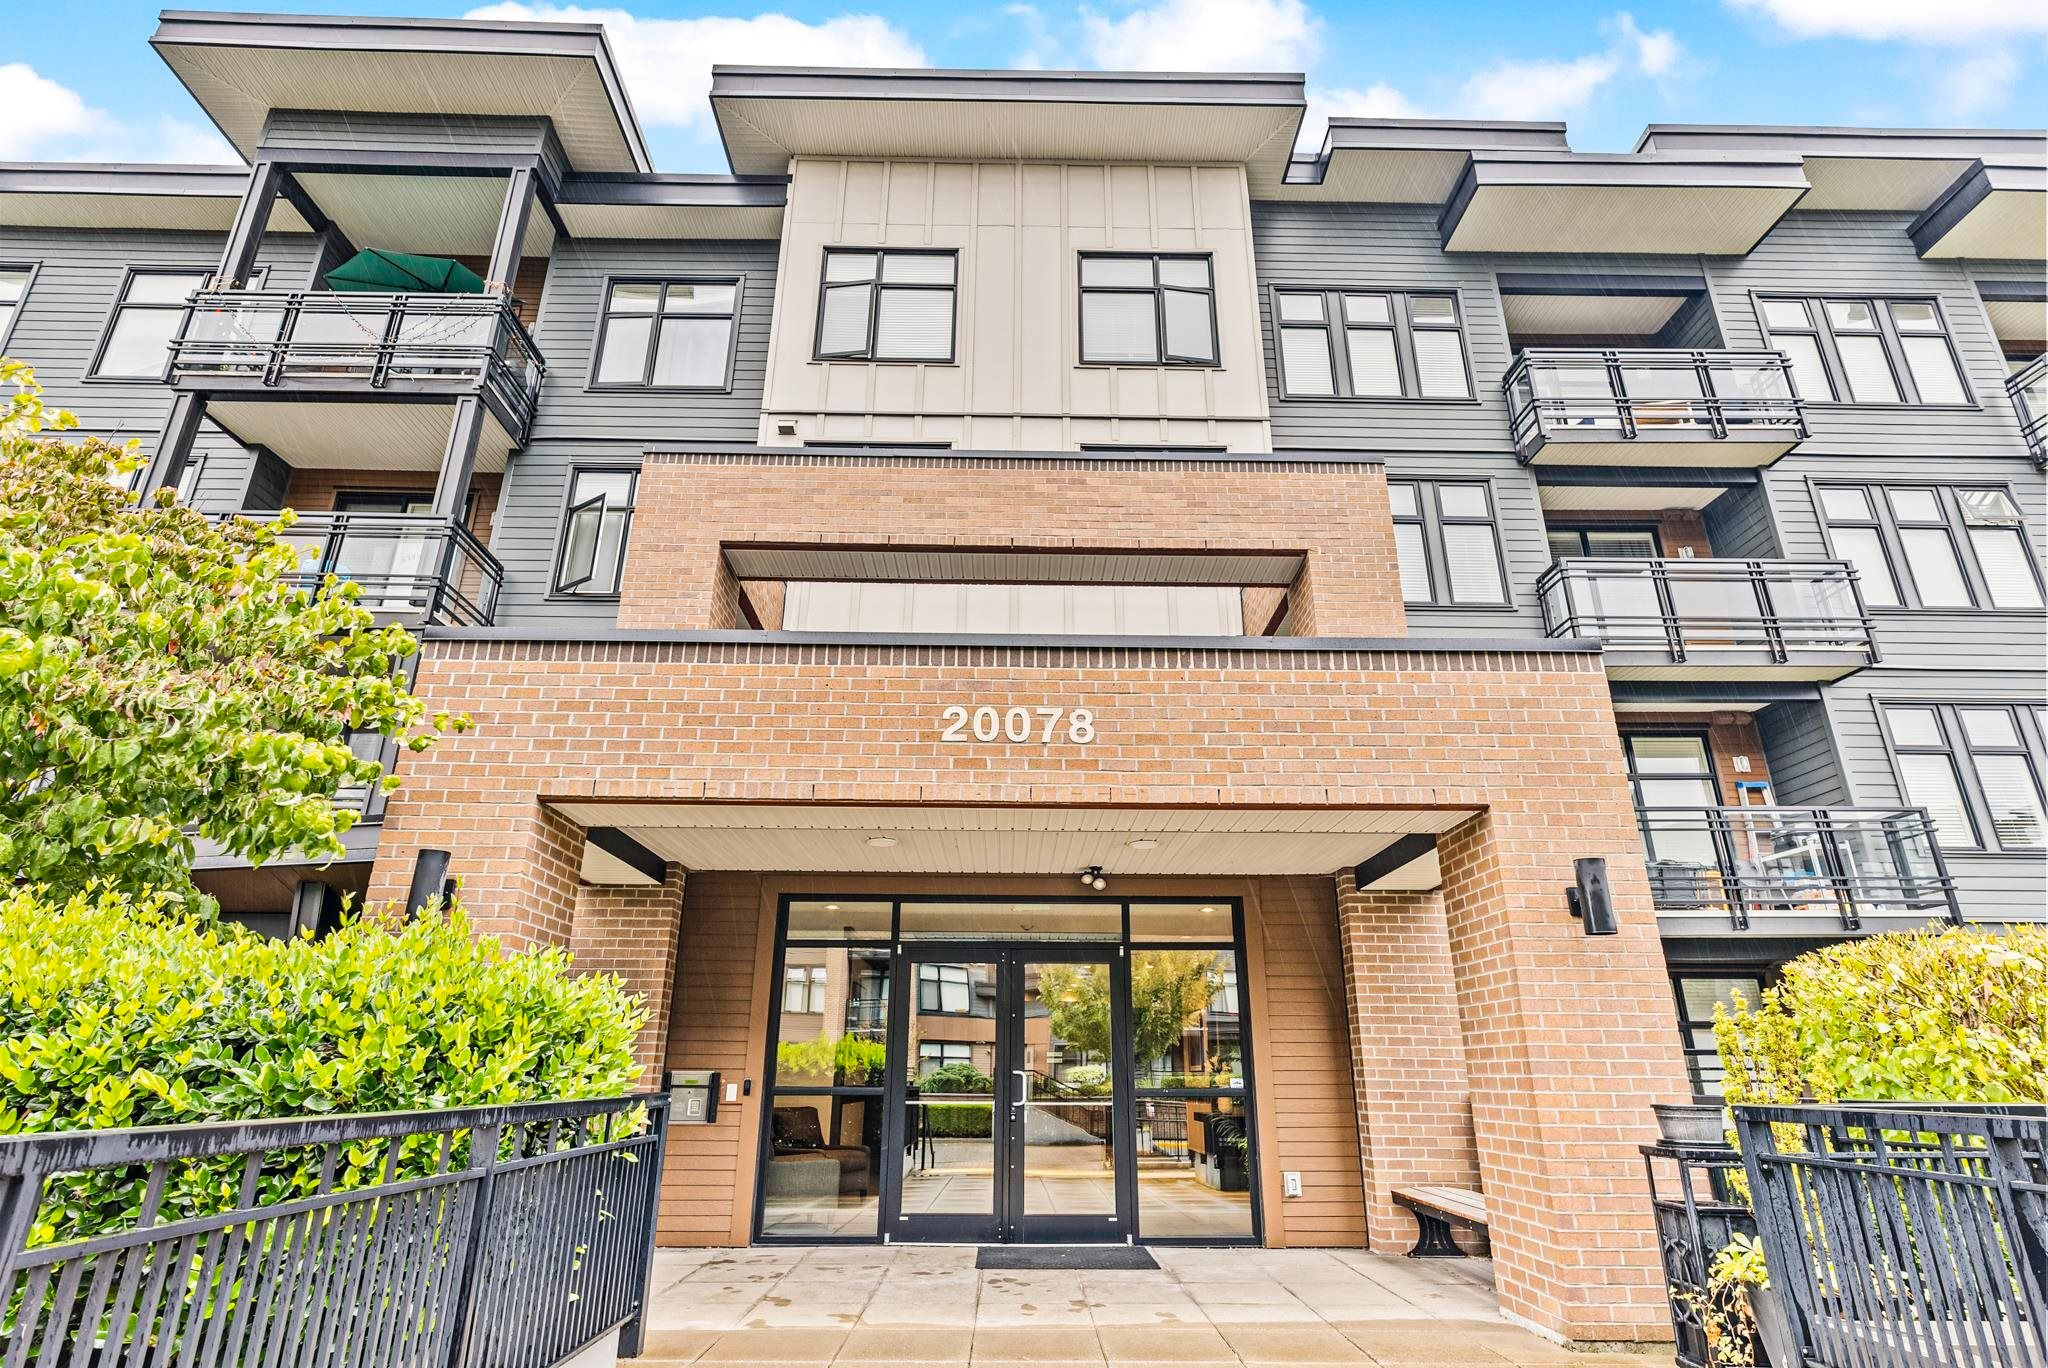 """Main Photo: 117 20078 FRASER Highway in Langley: Langley City Condo for sale in """"VARSITY"""" : MLS®# R2622422"""